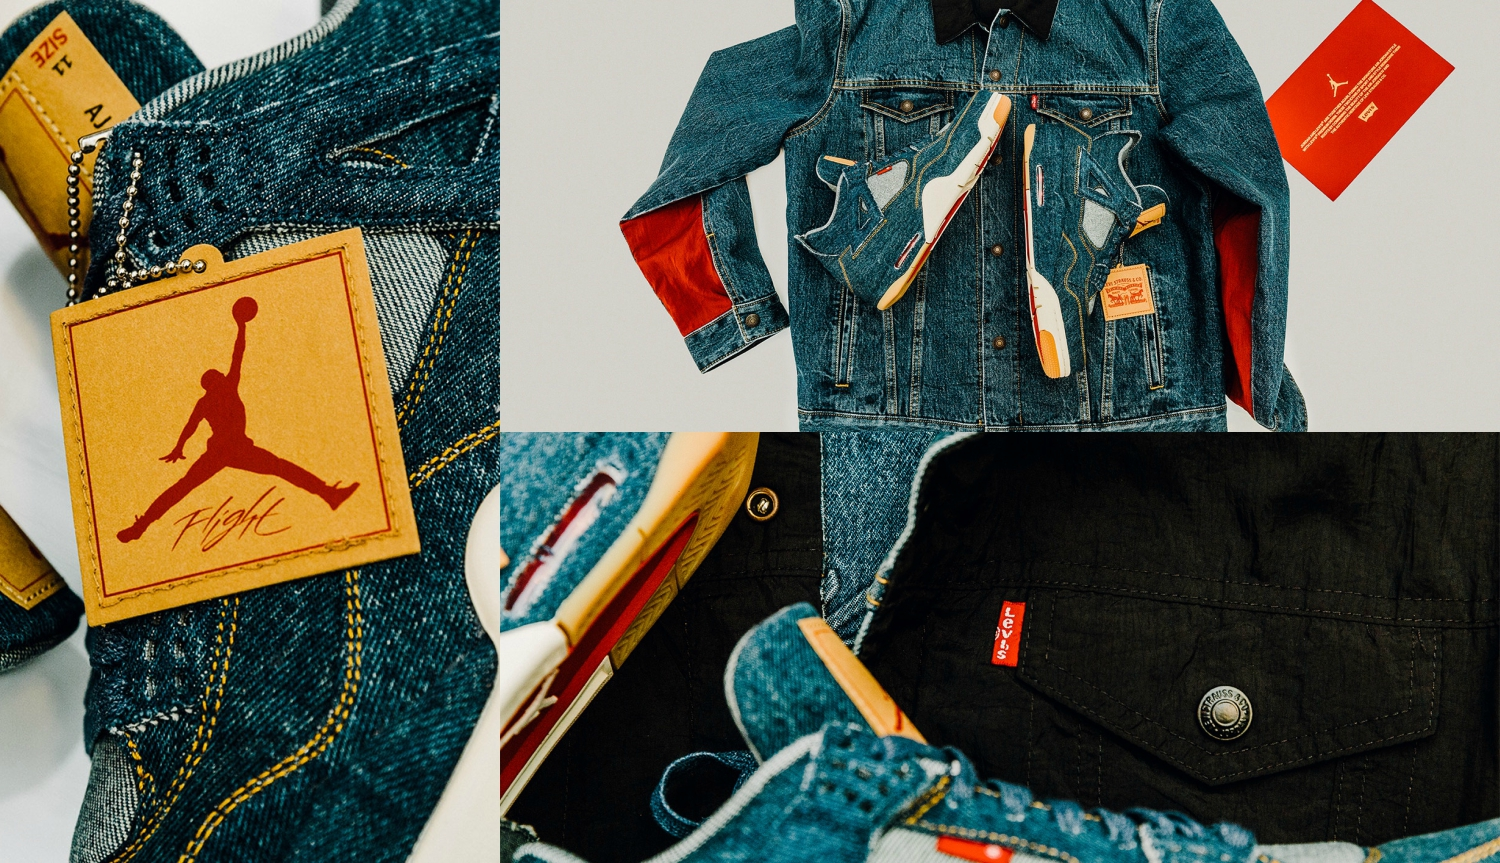 Jordan Brand x Levi's Unveil Air Jordan 4